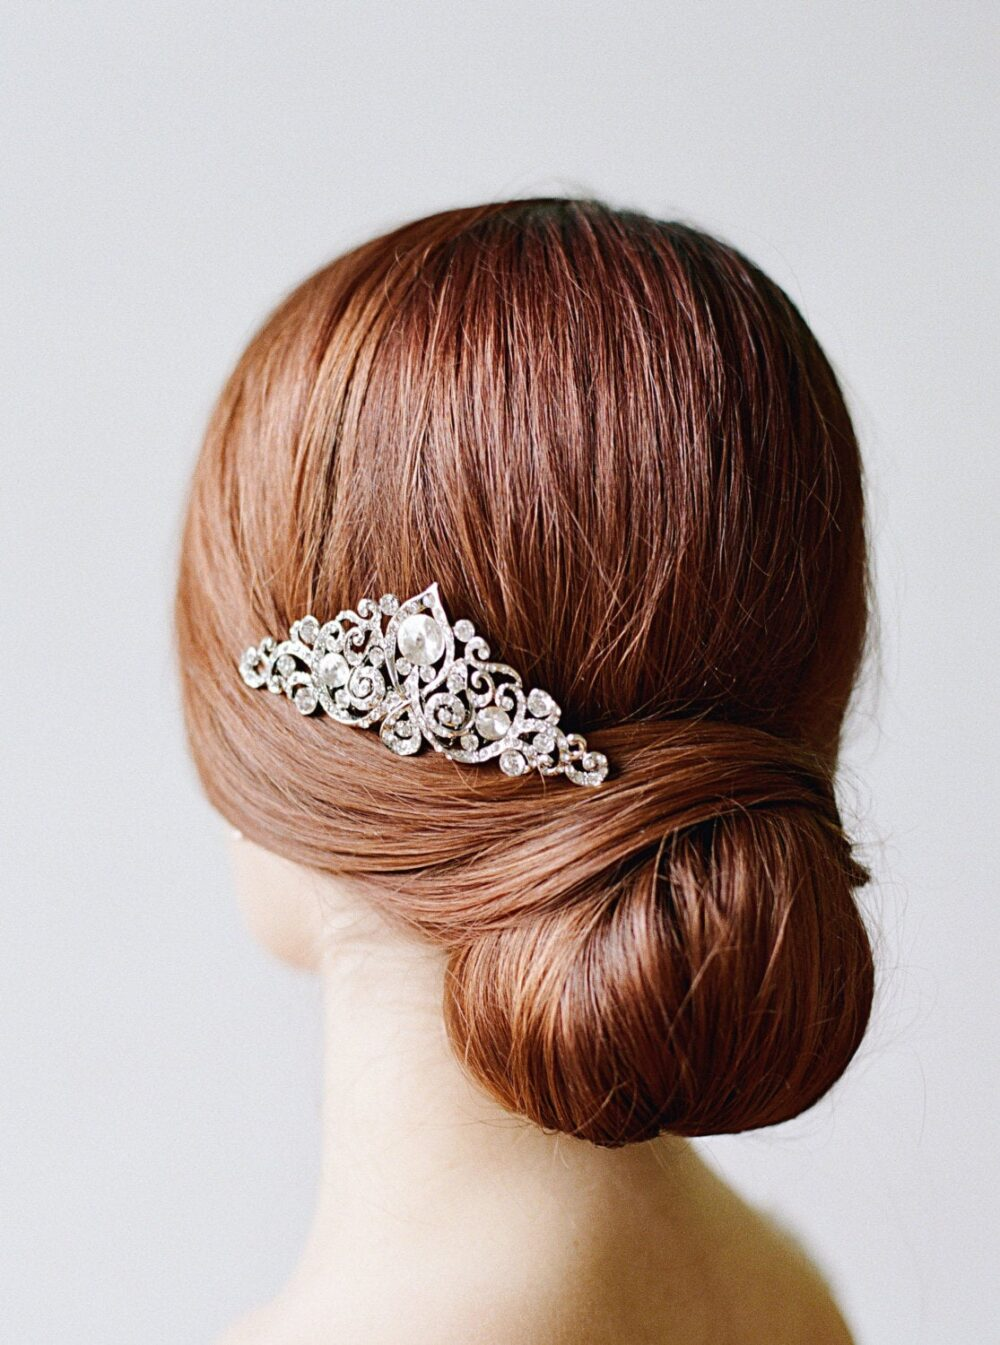 Wedding Hair Comb, Yvonna Bridal Comb, Swarovski Accessories, Wedding Accessories, Crystal Comb, Vintage Comb, Bridal Jewelry